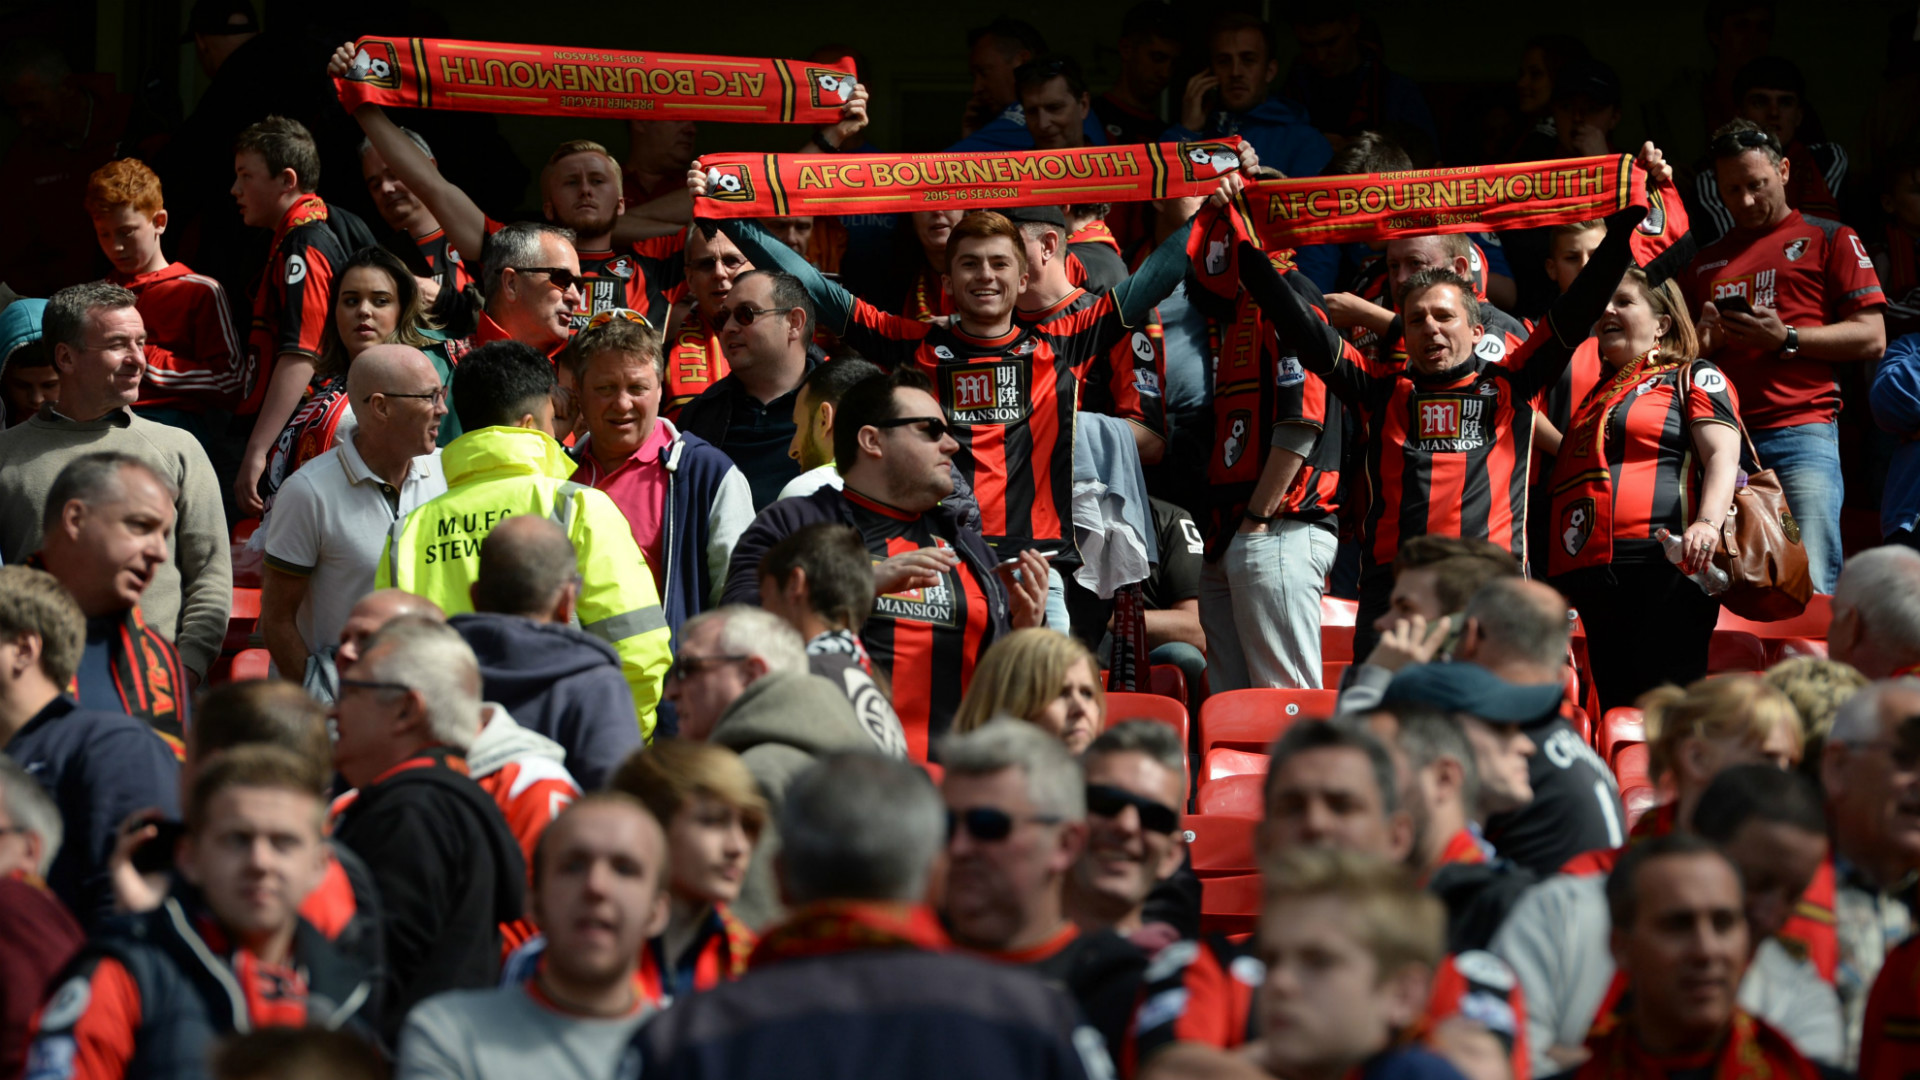 man united news: bournemouth fans given free travel for rearranged fixture